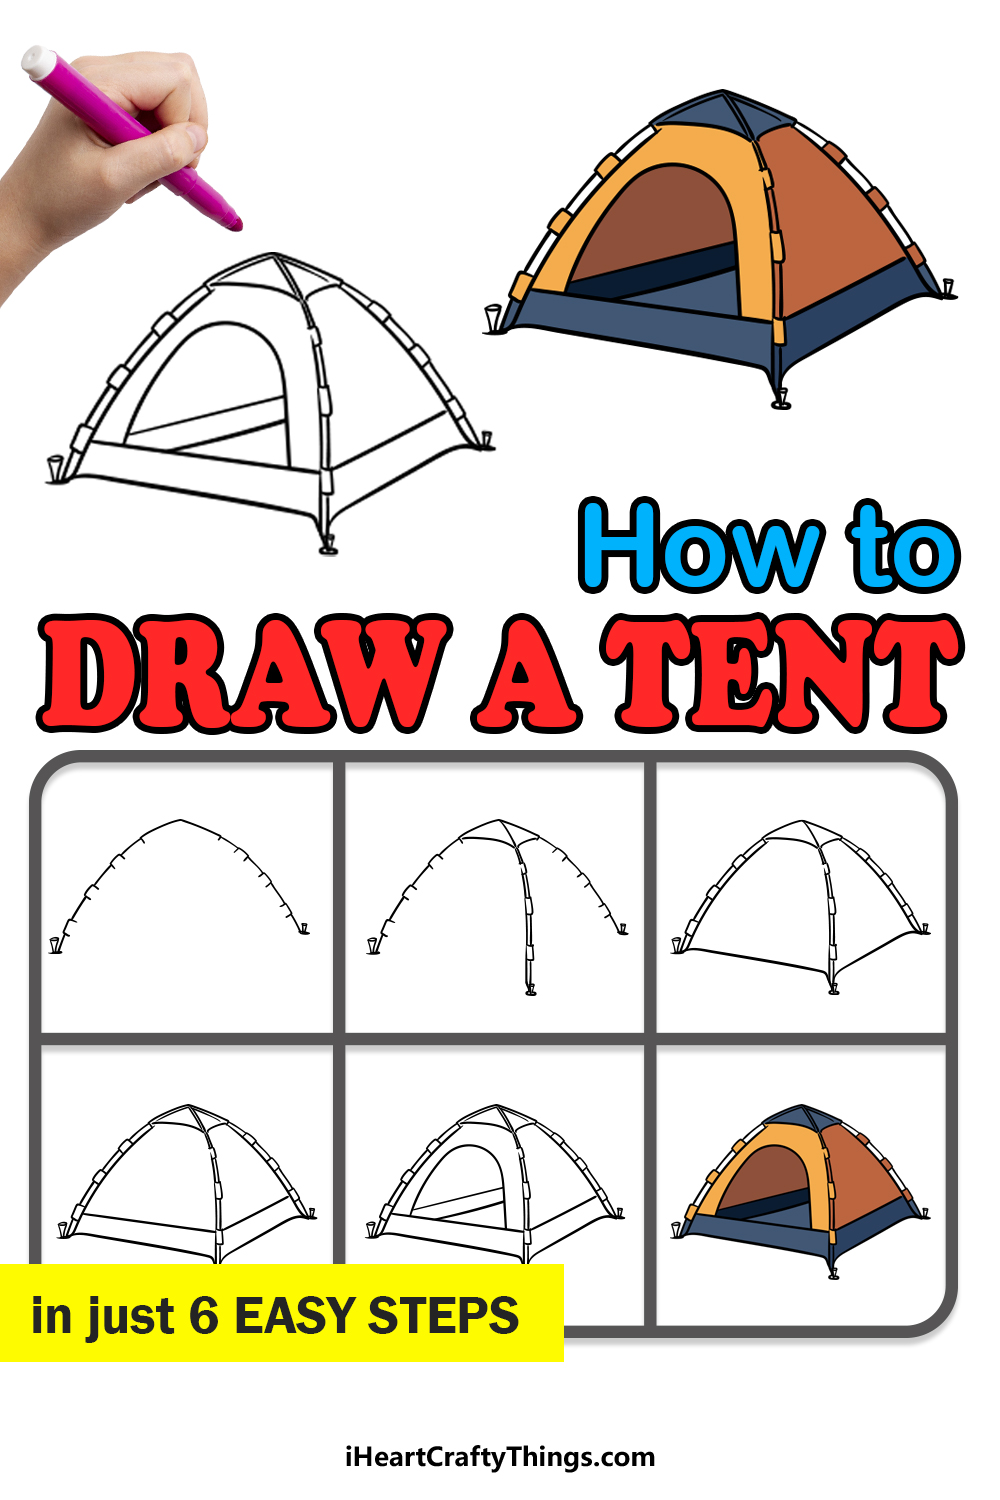 how to draw a tent in 6 easy steps